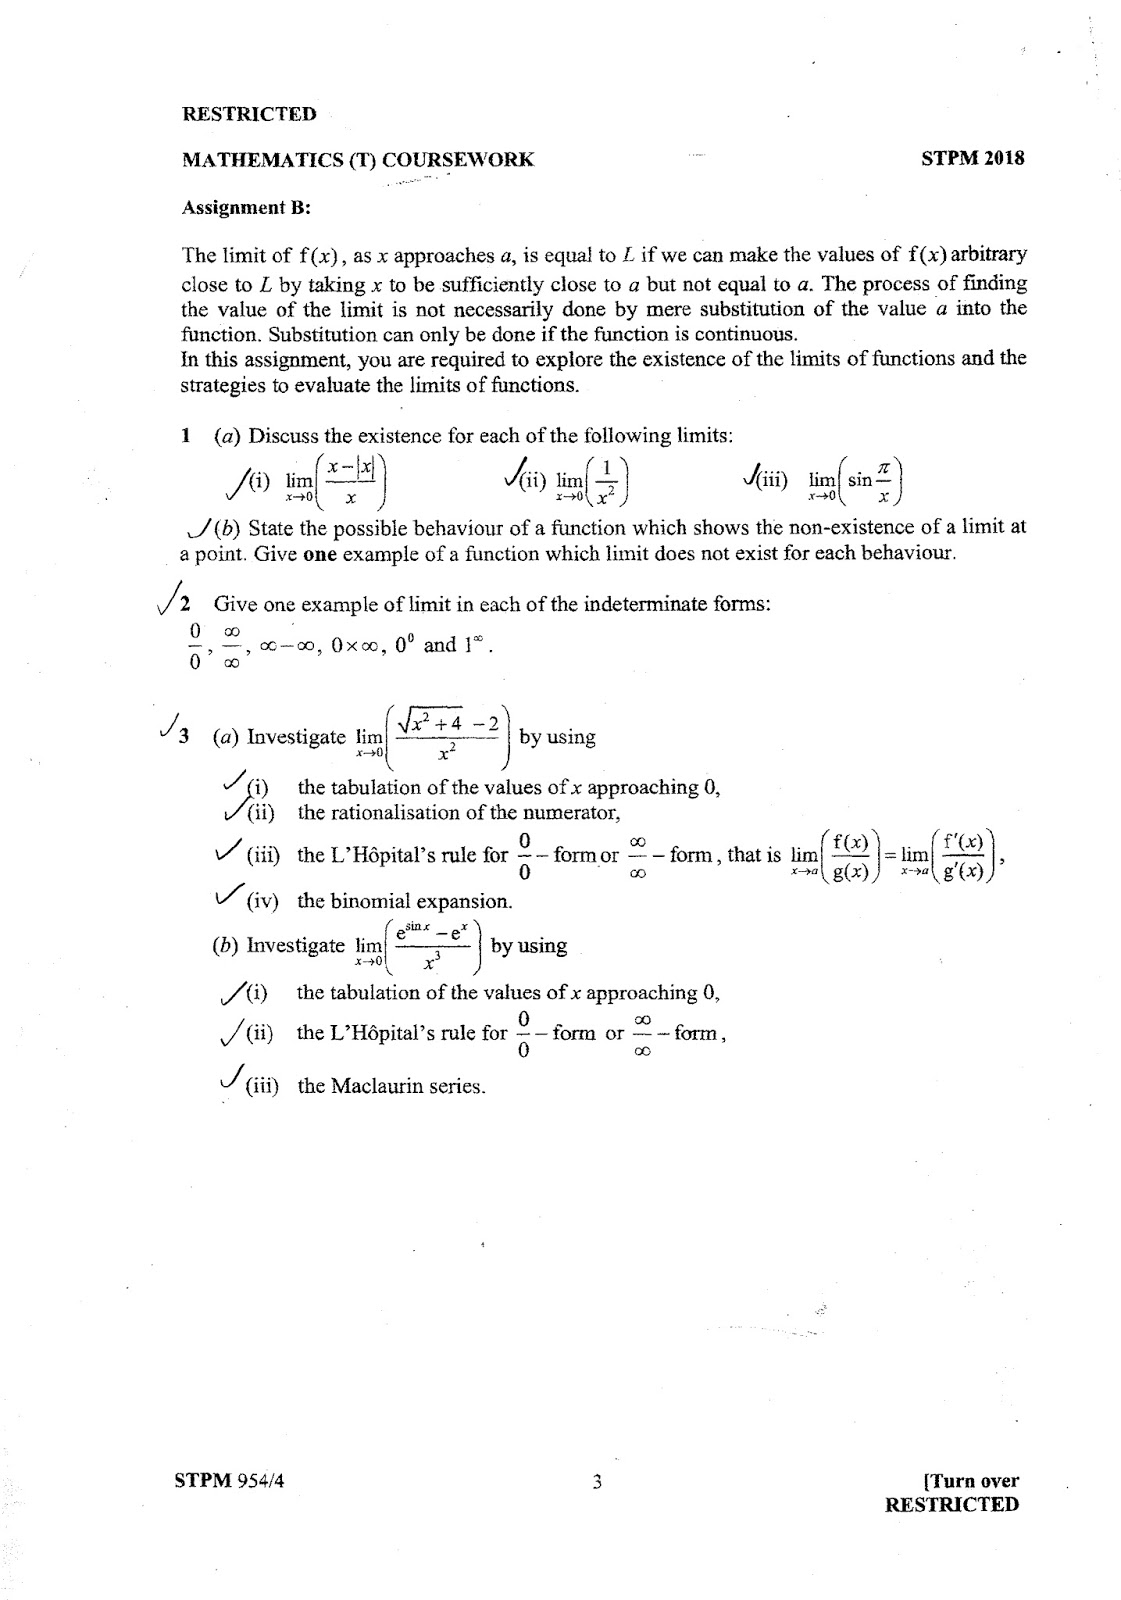 Stpm Term 2 Mathematics T Coursework Sample Solution